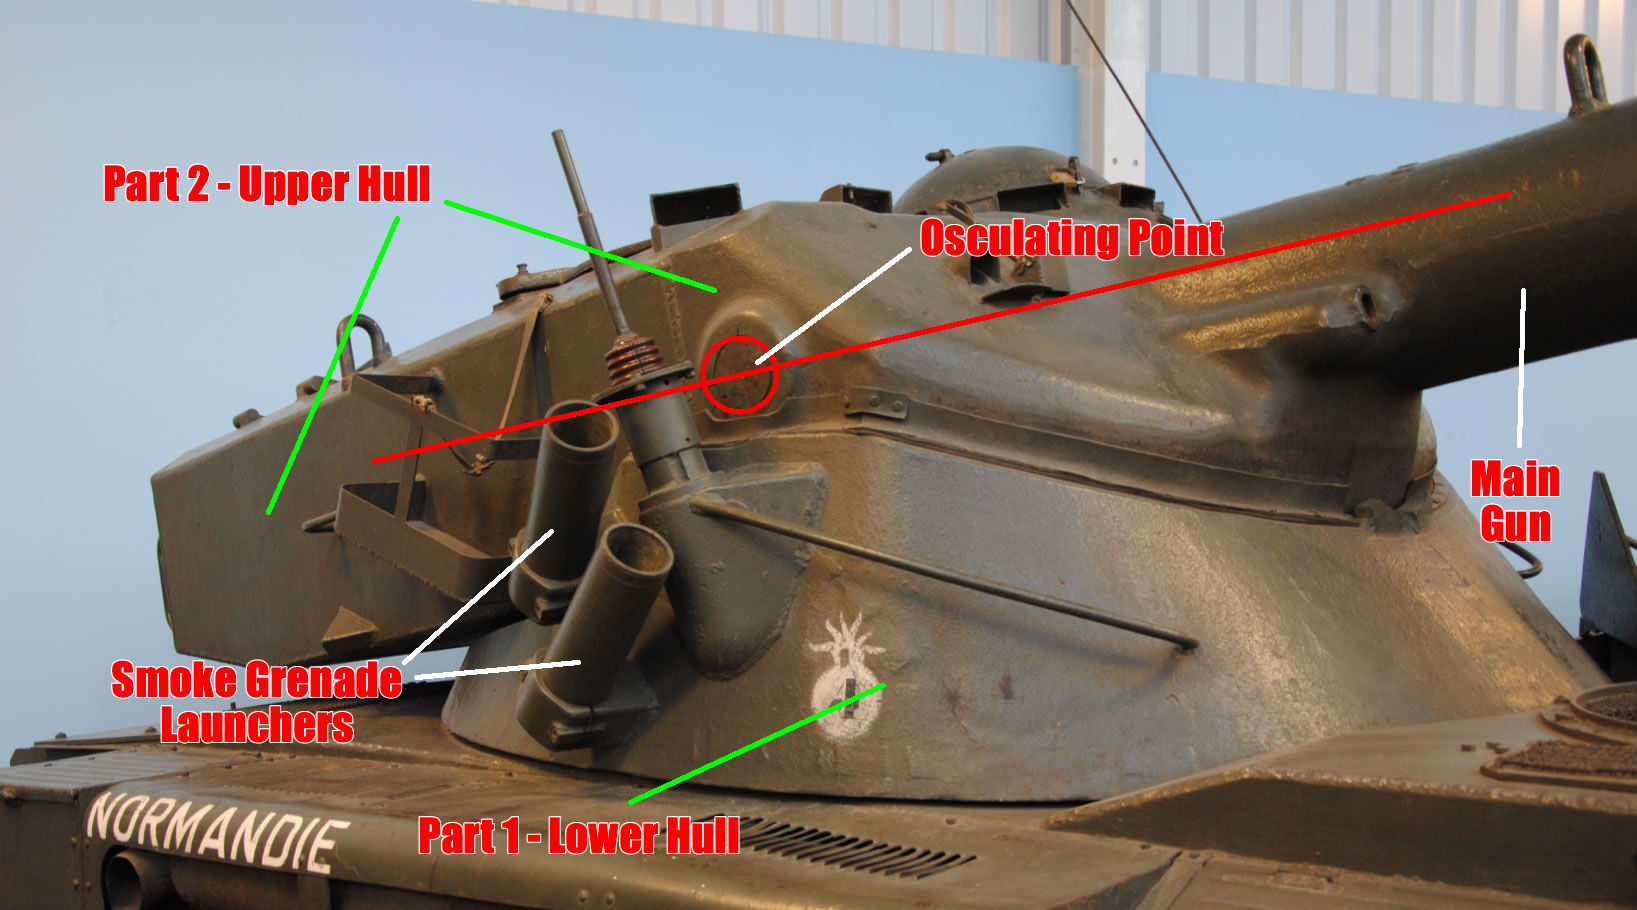 AMX 13 needs buff - French Tanks - World of Tanks Blitz official forum